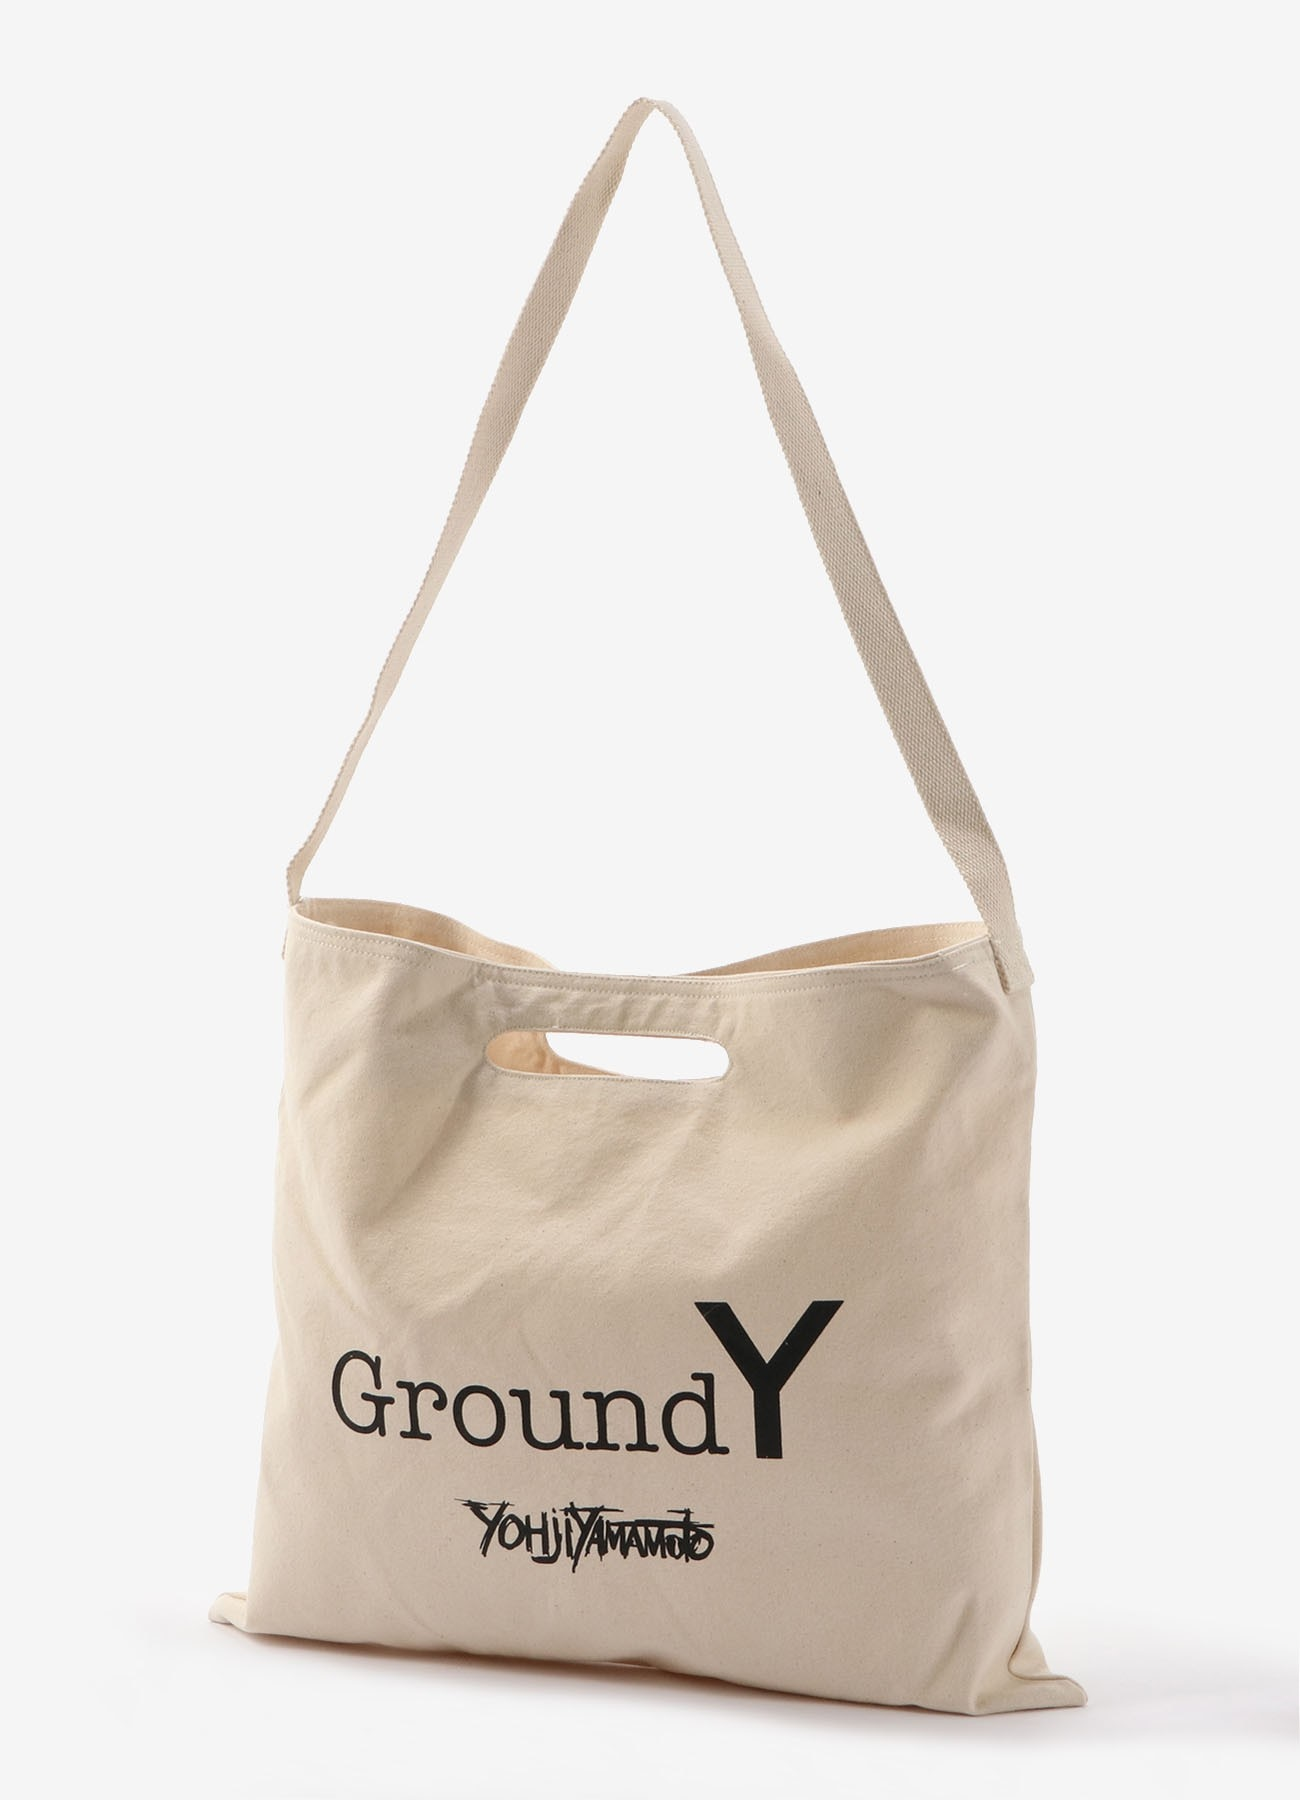 3Way Canvas Tote Bag